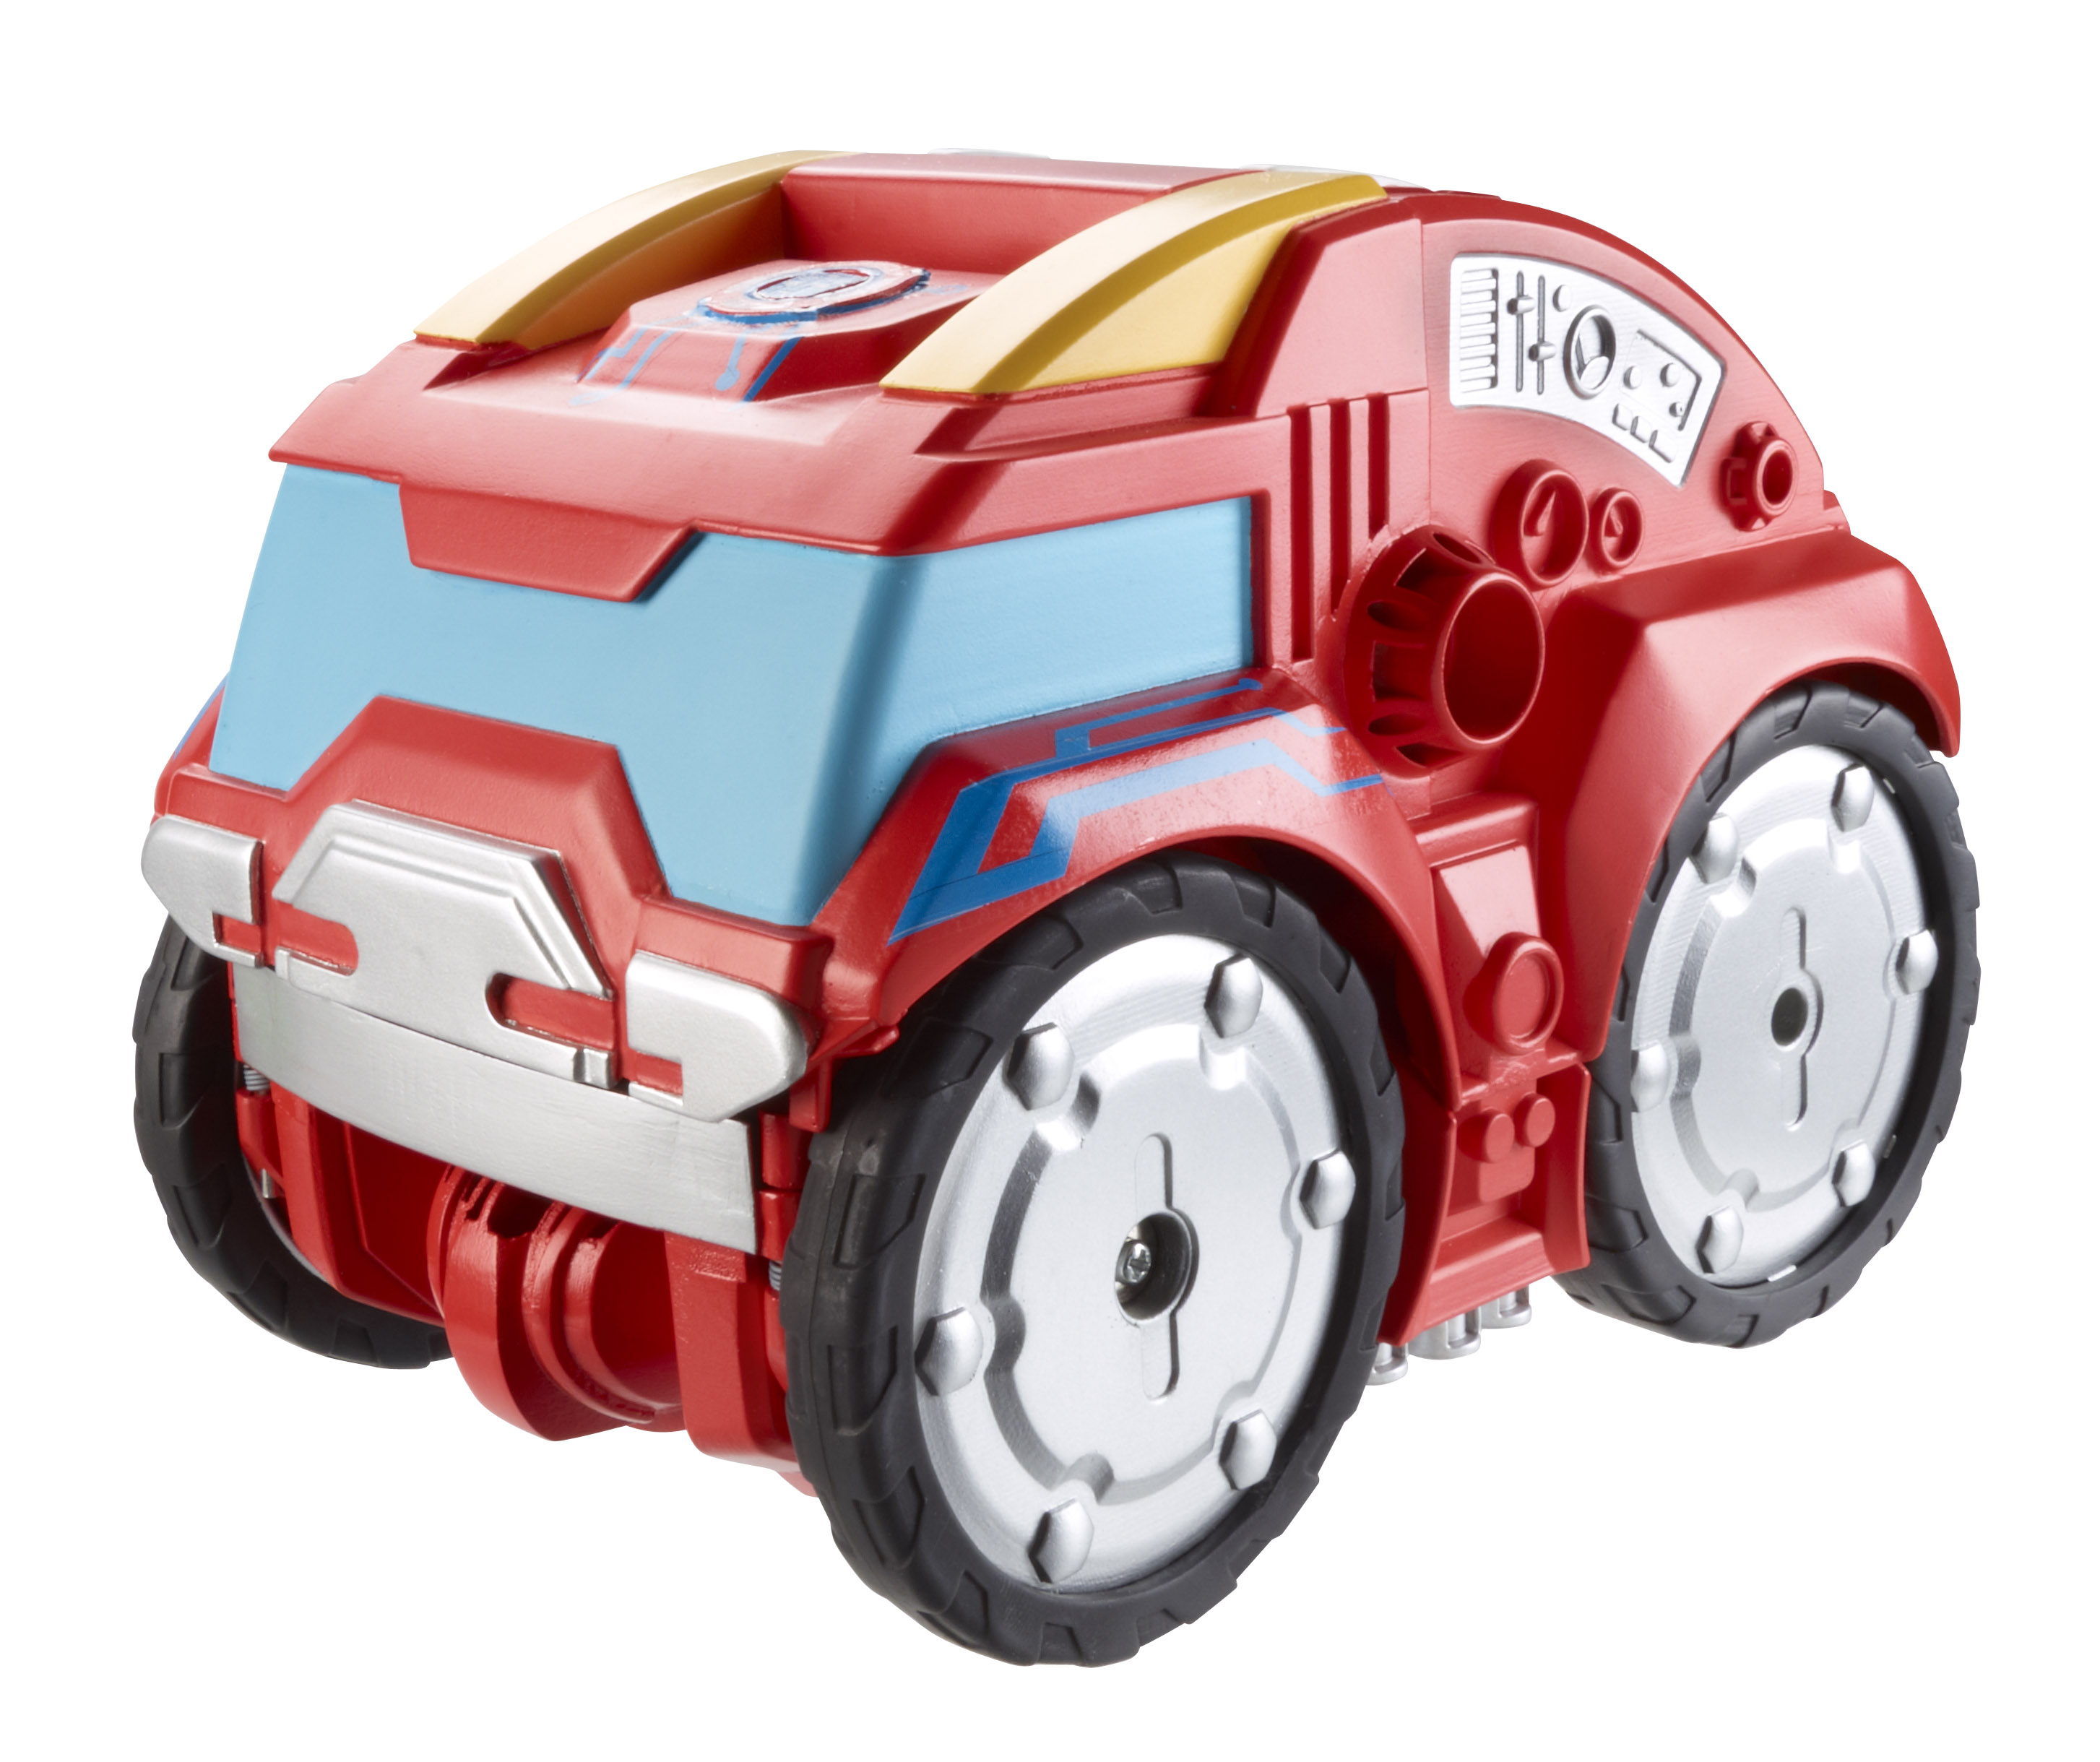 New Transformers Rescue Bots Toys